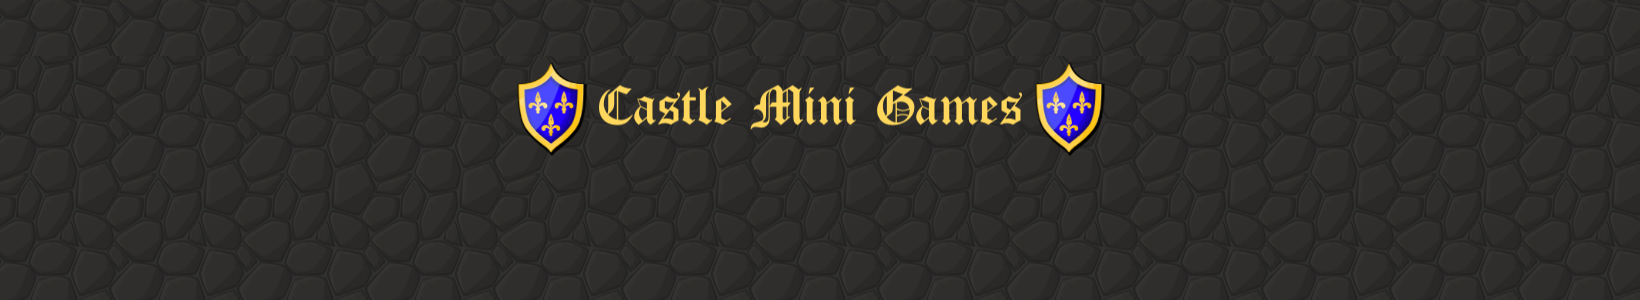 Castle Mini Games